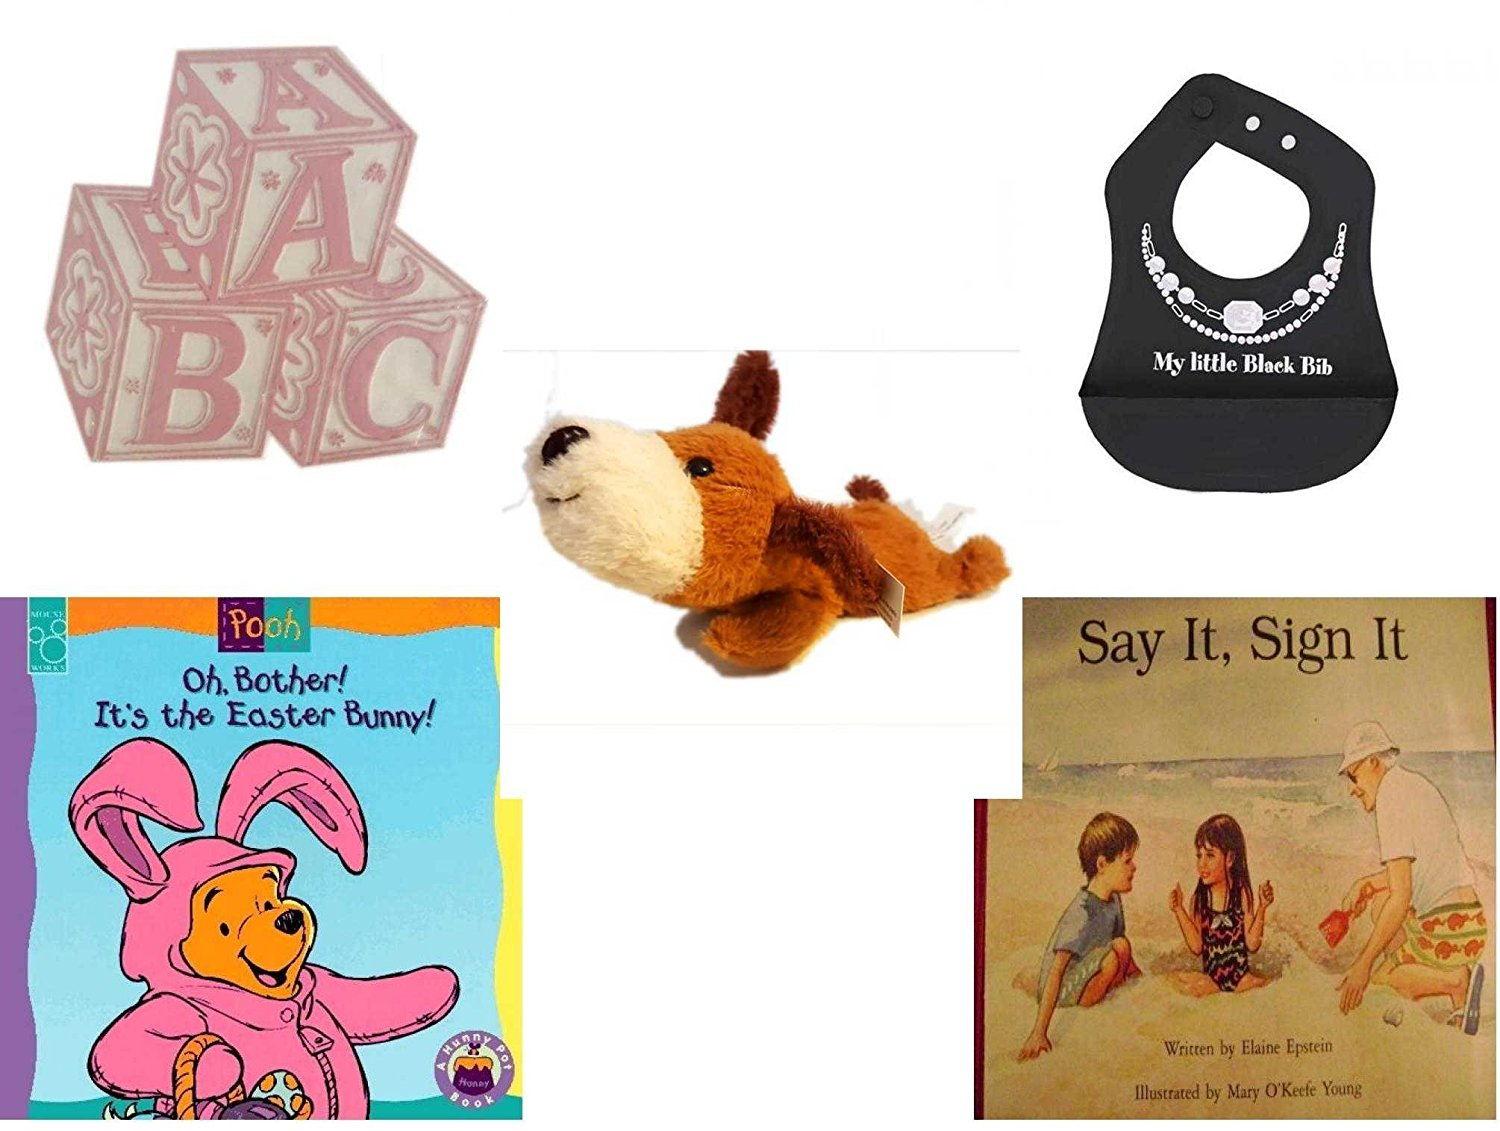 Children's Gift Bundle - Ages 0-2 [5 Piece] - ABC Baby Blocks Cake Topper Pink Girl - Ganz Baby Girl's My Little Black Bib Silicone Crumb Catcher - Soft n' Cuddly Big Head Puppy - Oh, Bother. It's t